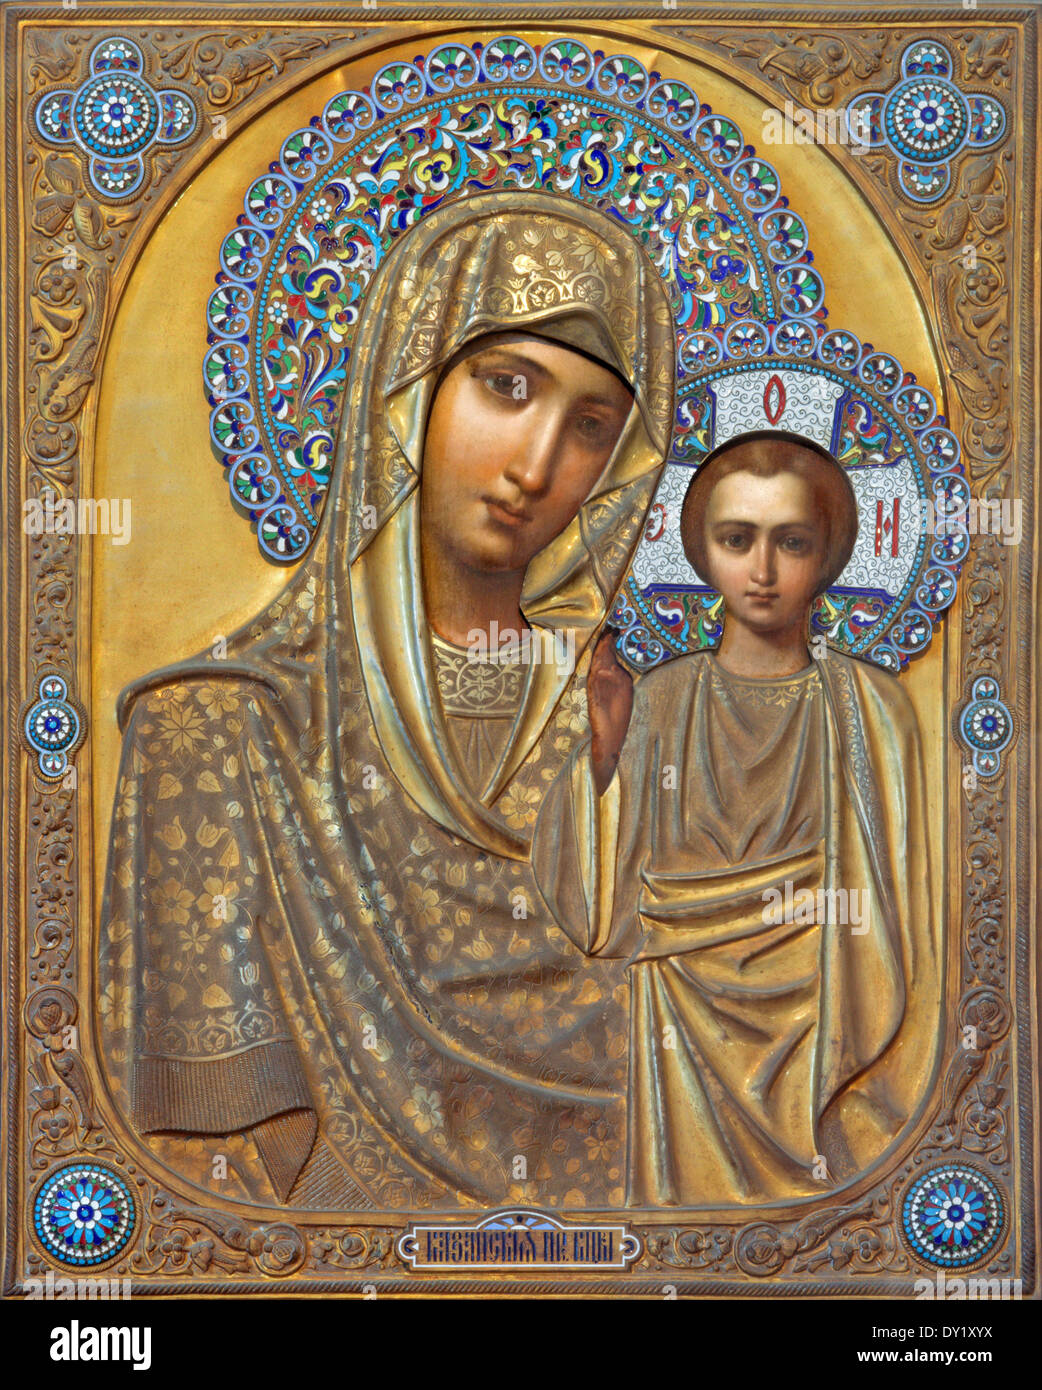 Venice - Icon of Madonna with the child from Russian town Kazan in church of San Martino of Saint Martin on Burano island. - Stock Image